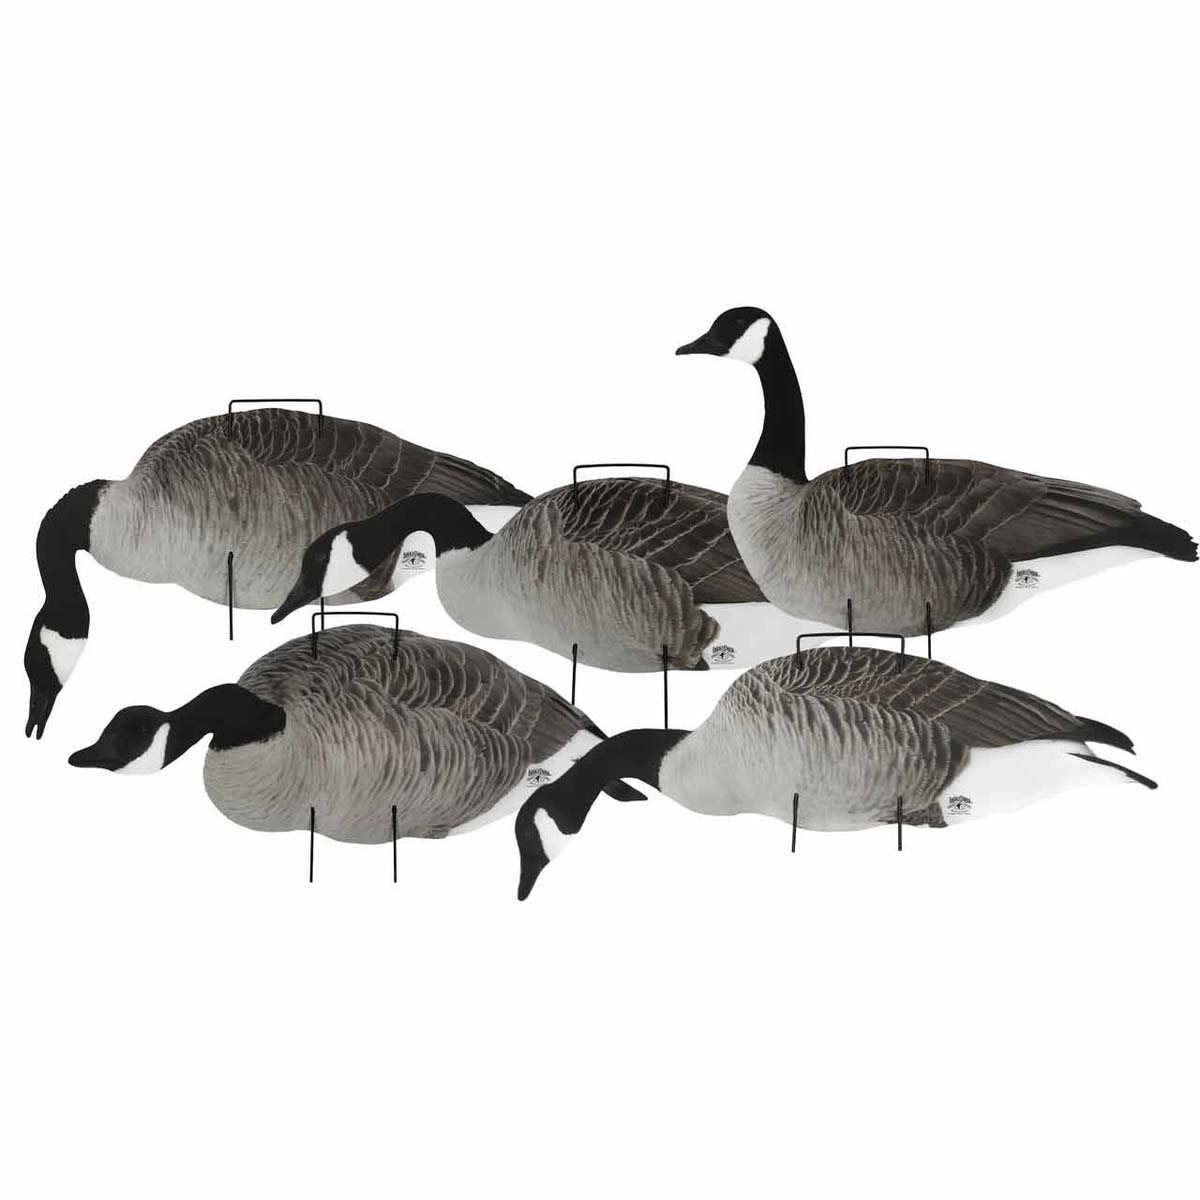 Lucky Canada Goose Silhouettes, 12 Pack